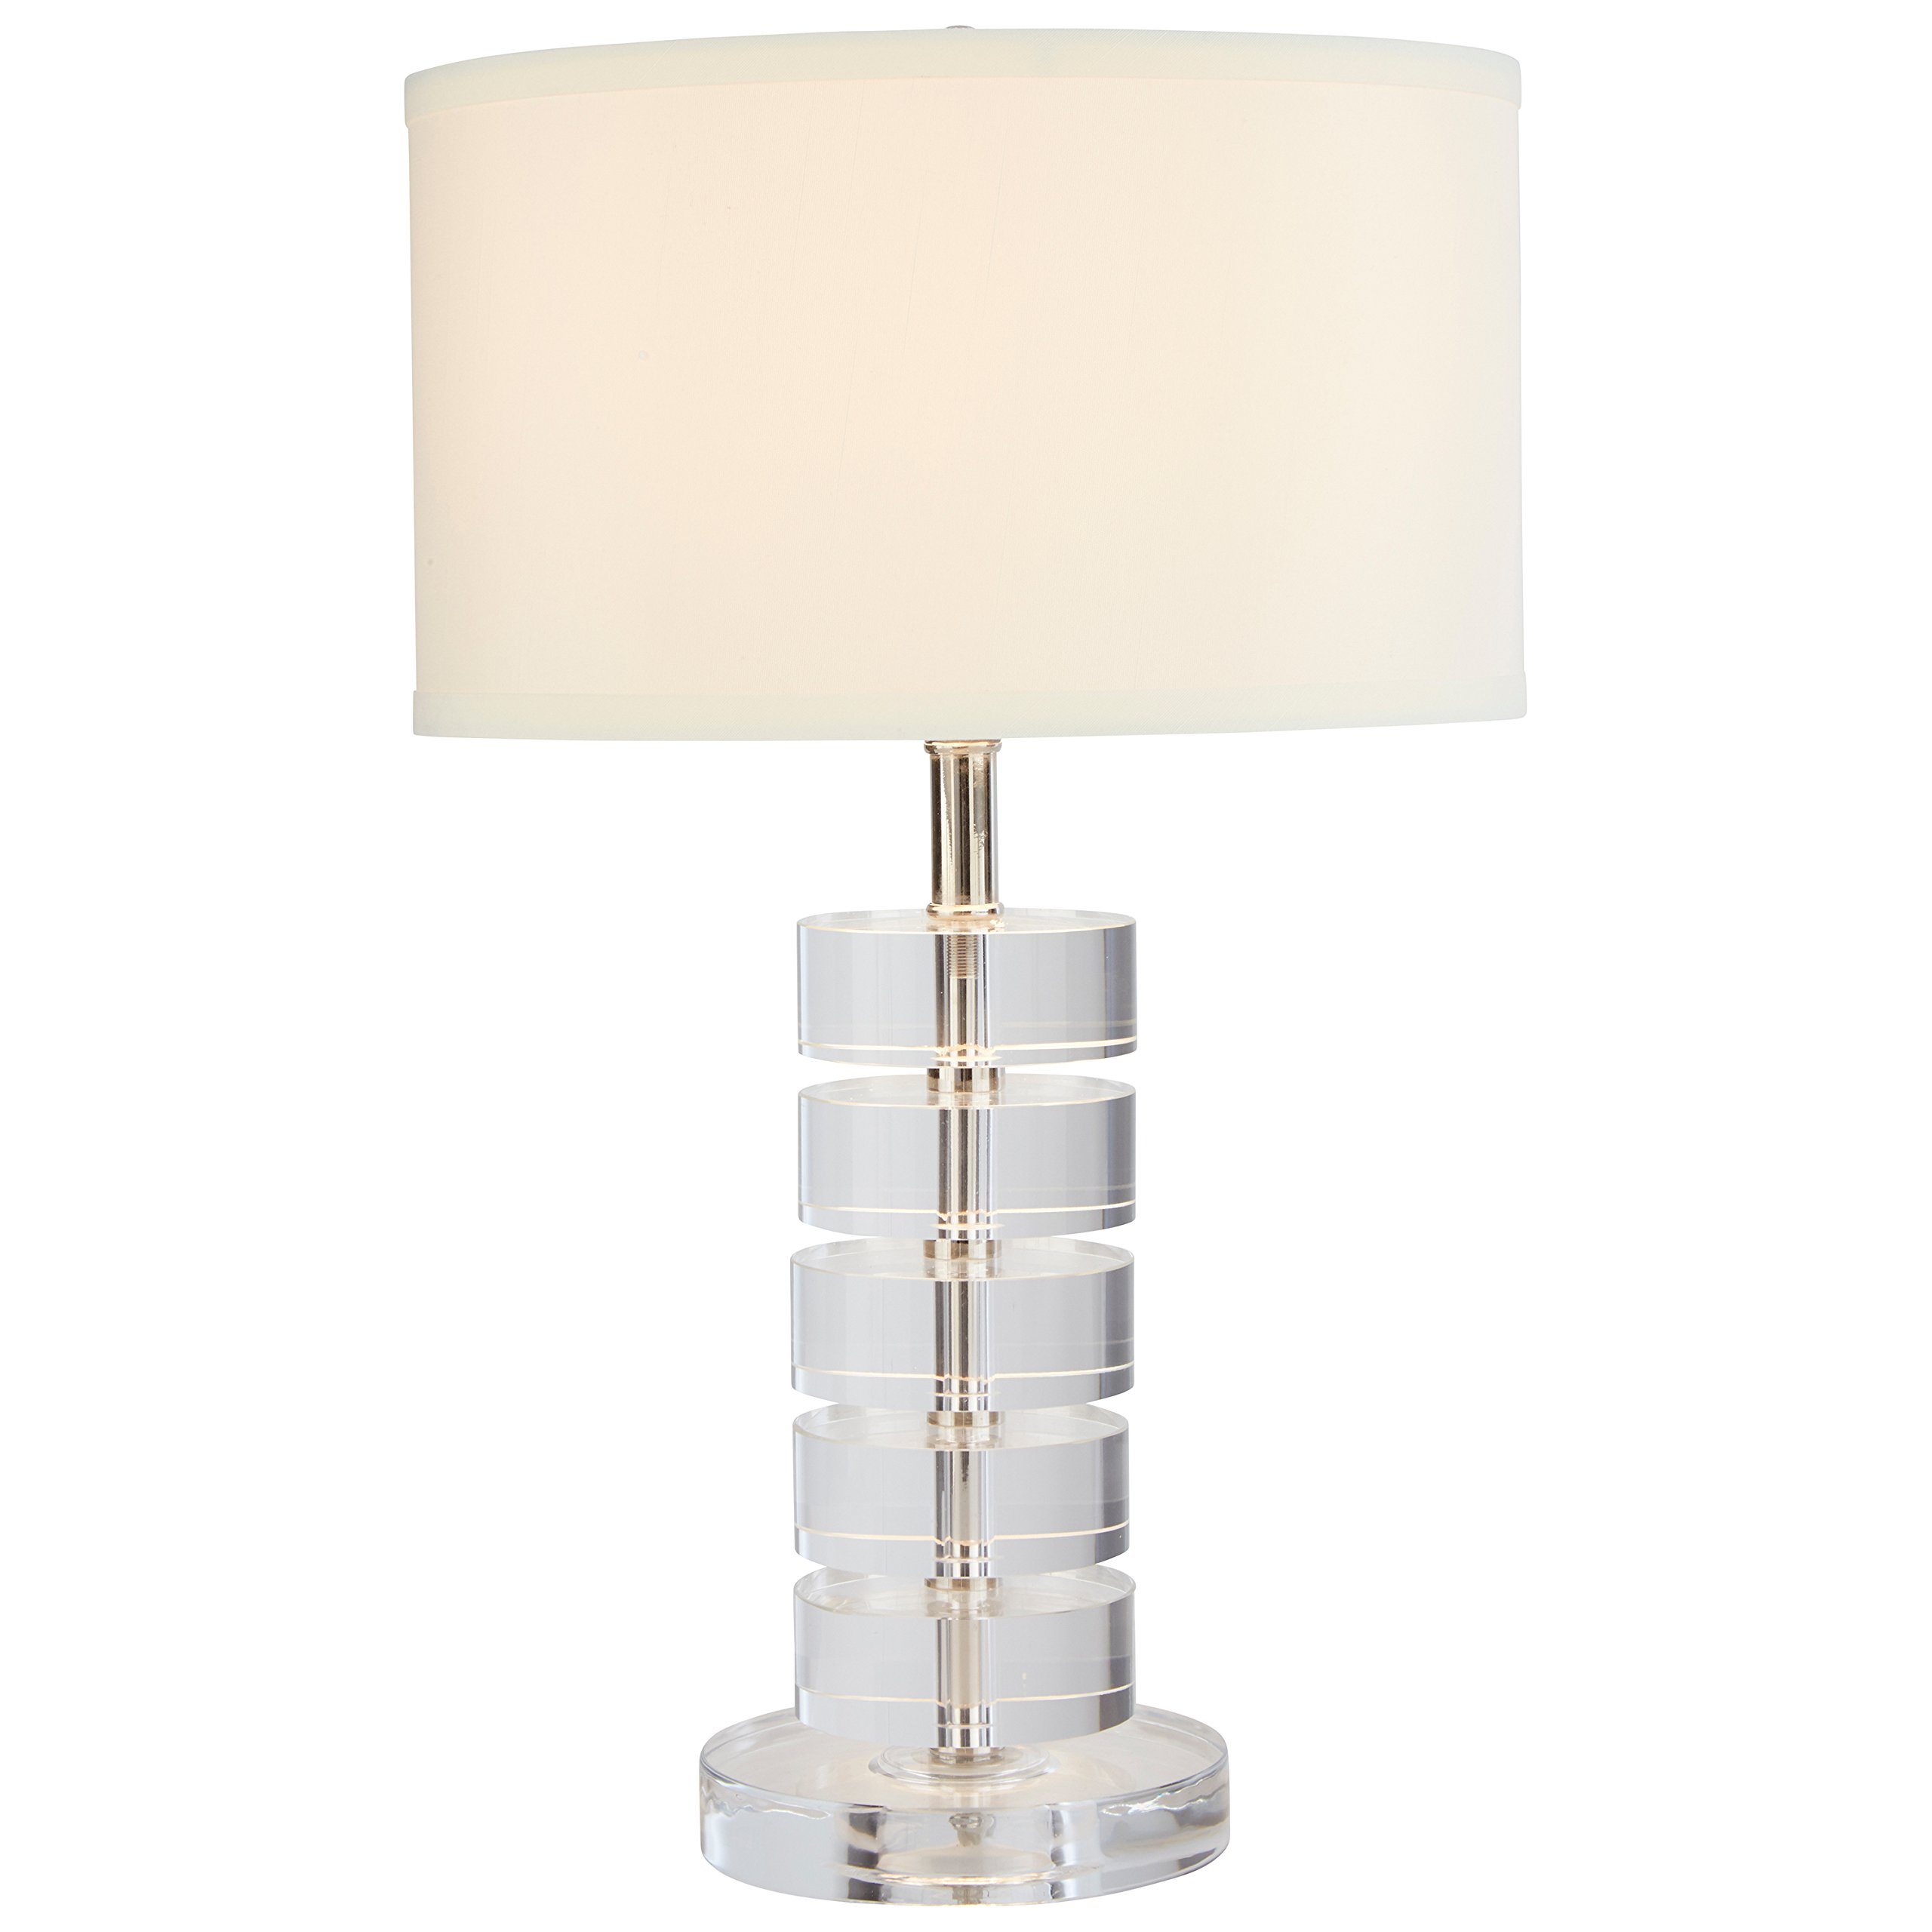 Stone & Beam Modern Crystal Disc Table Lamp, 19.5''H, With Bulb, Shade by Stone & Beam